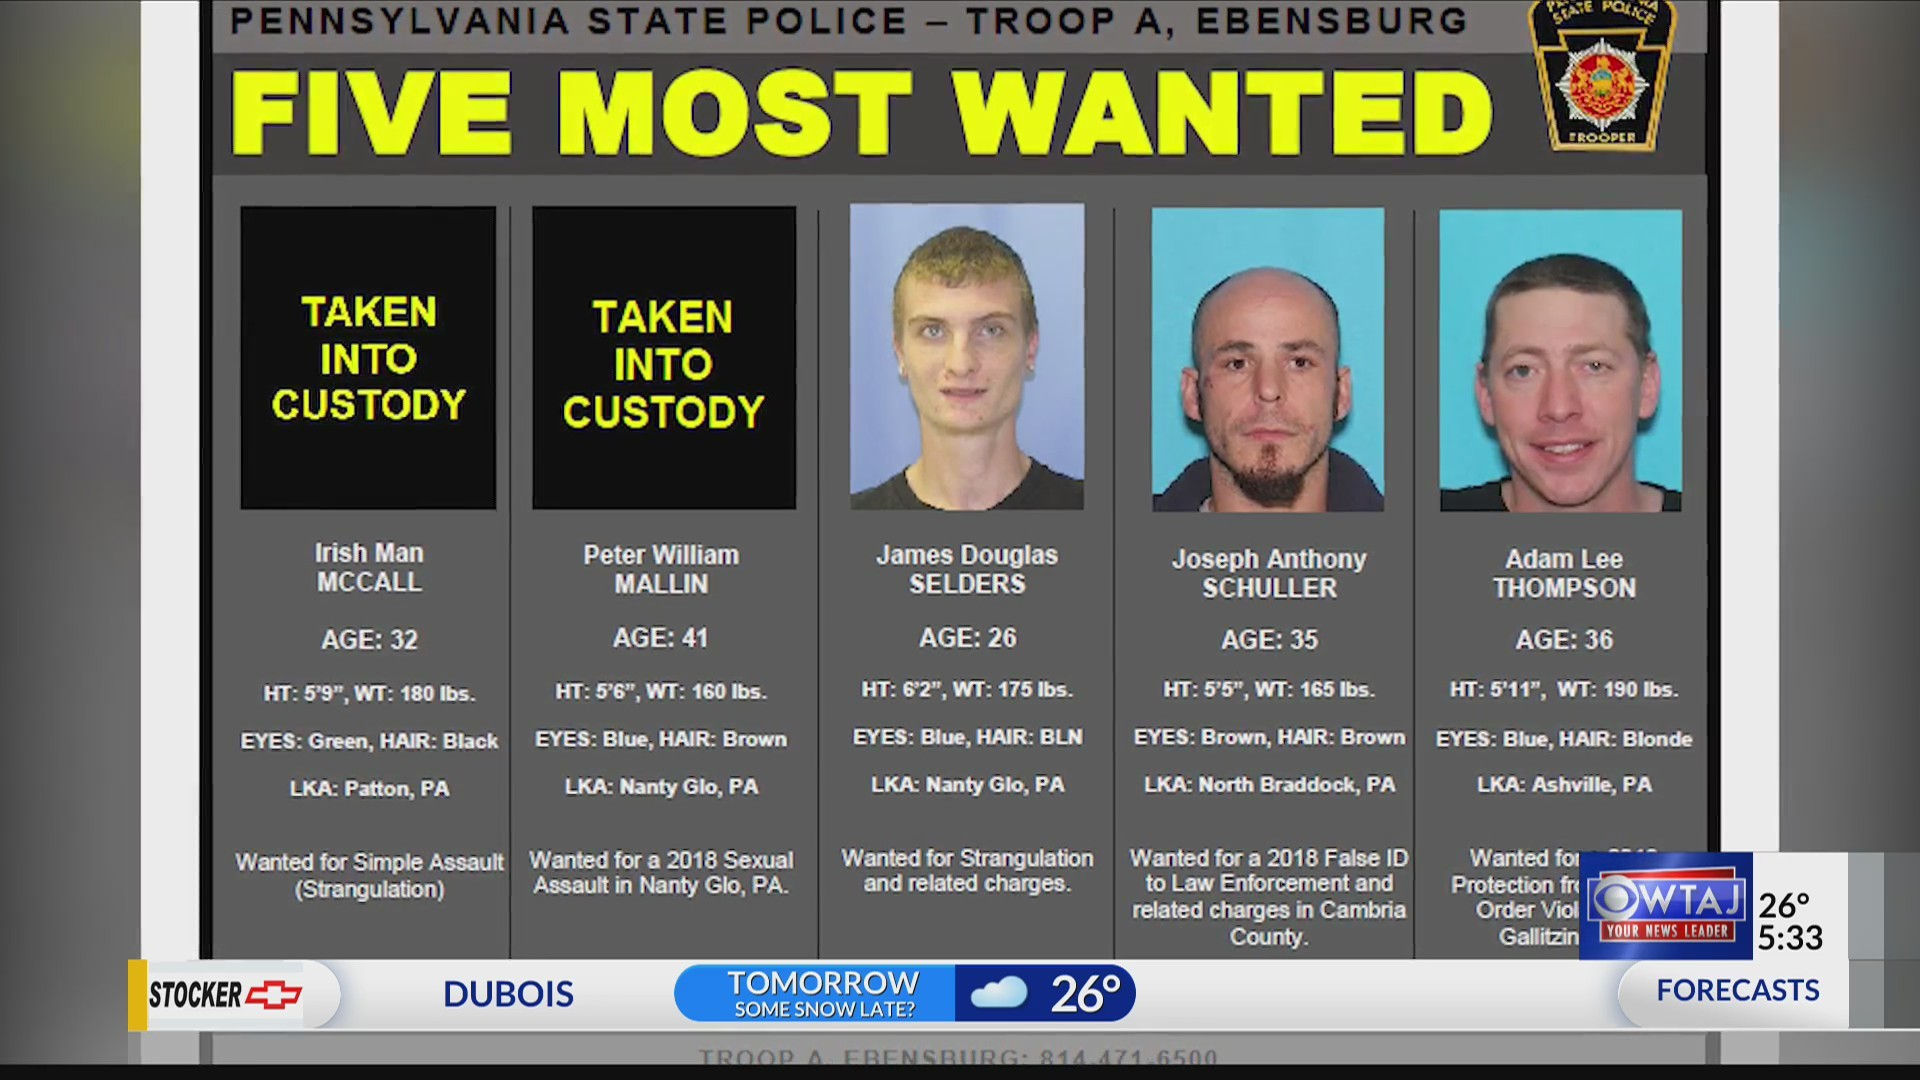 Update_to_Ebensburg_Five_Most_Wanted_fug_0_20190111224407